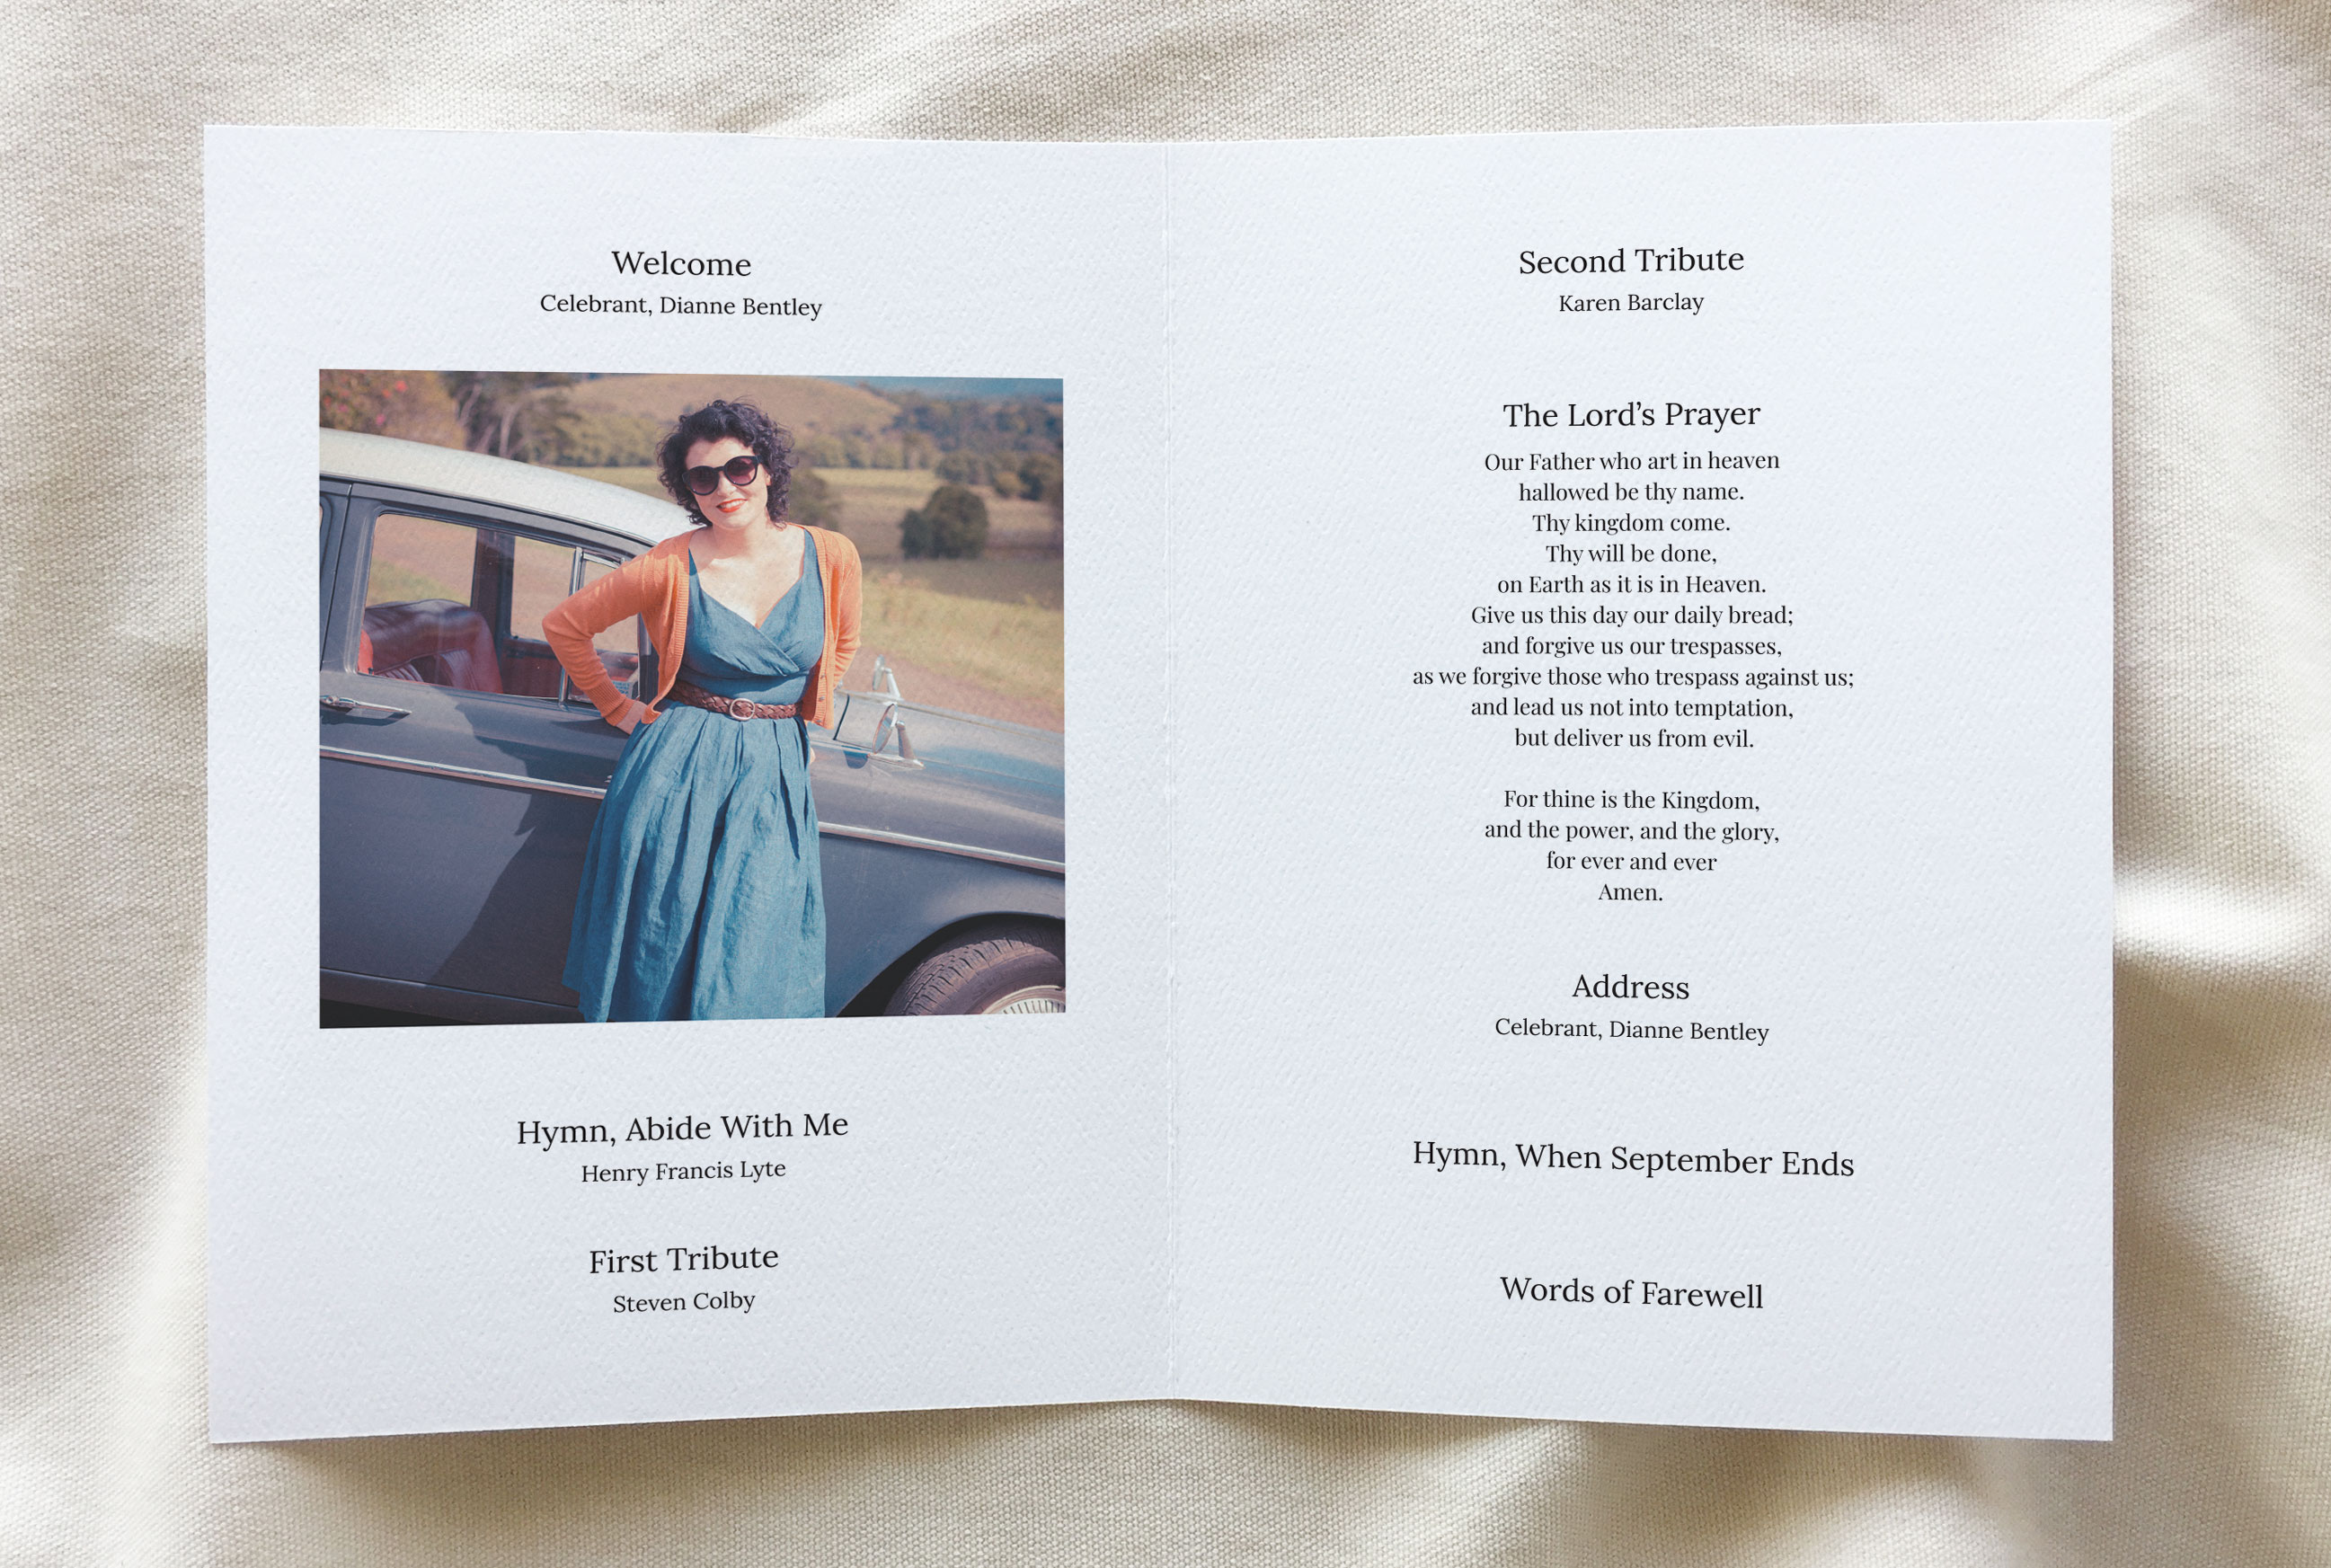 funeral booklet template - Aura theme inside pages